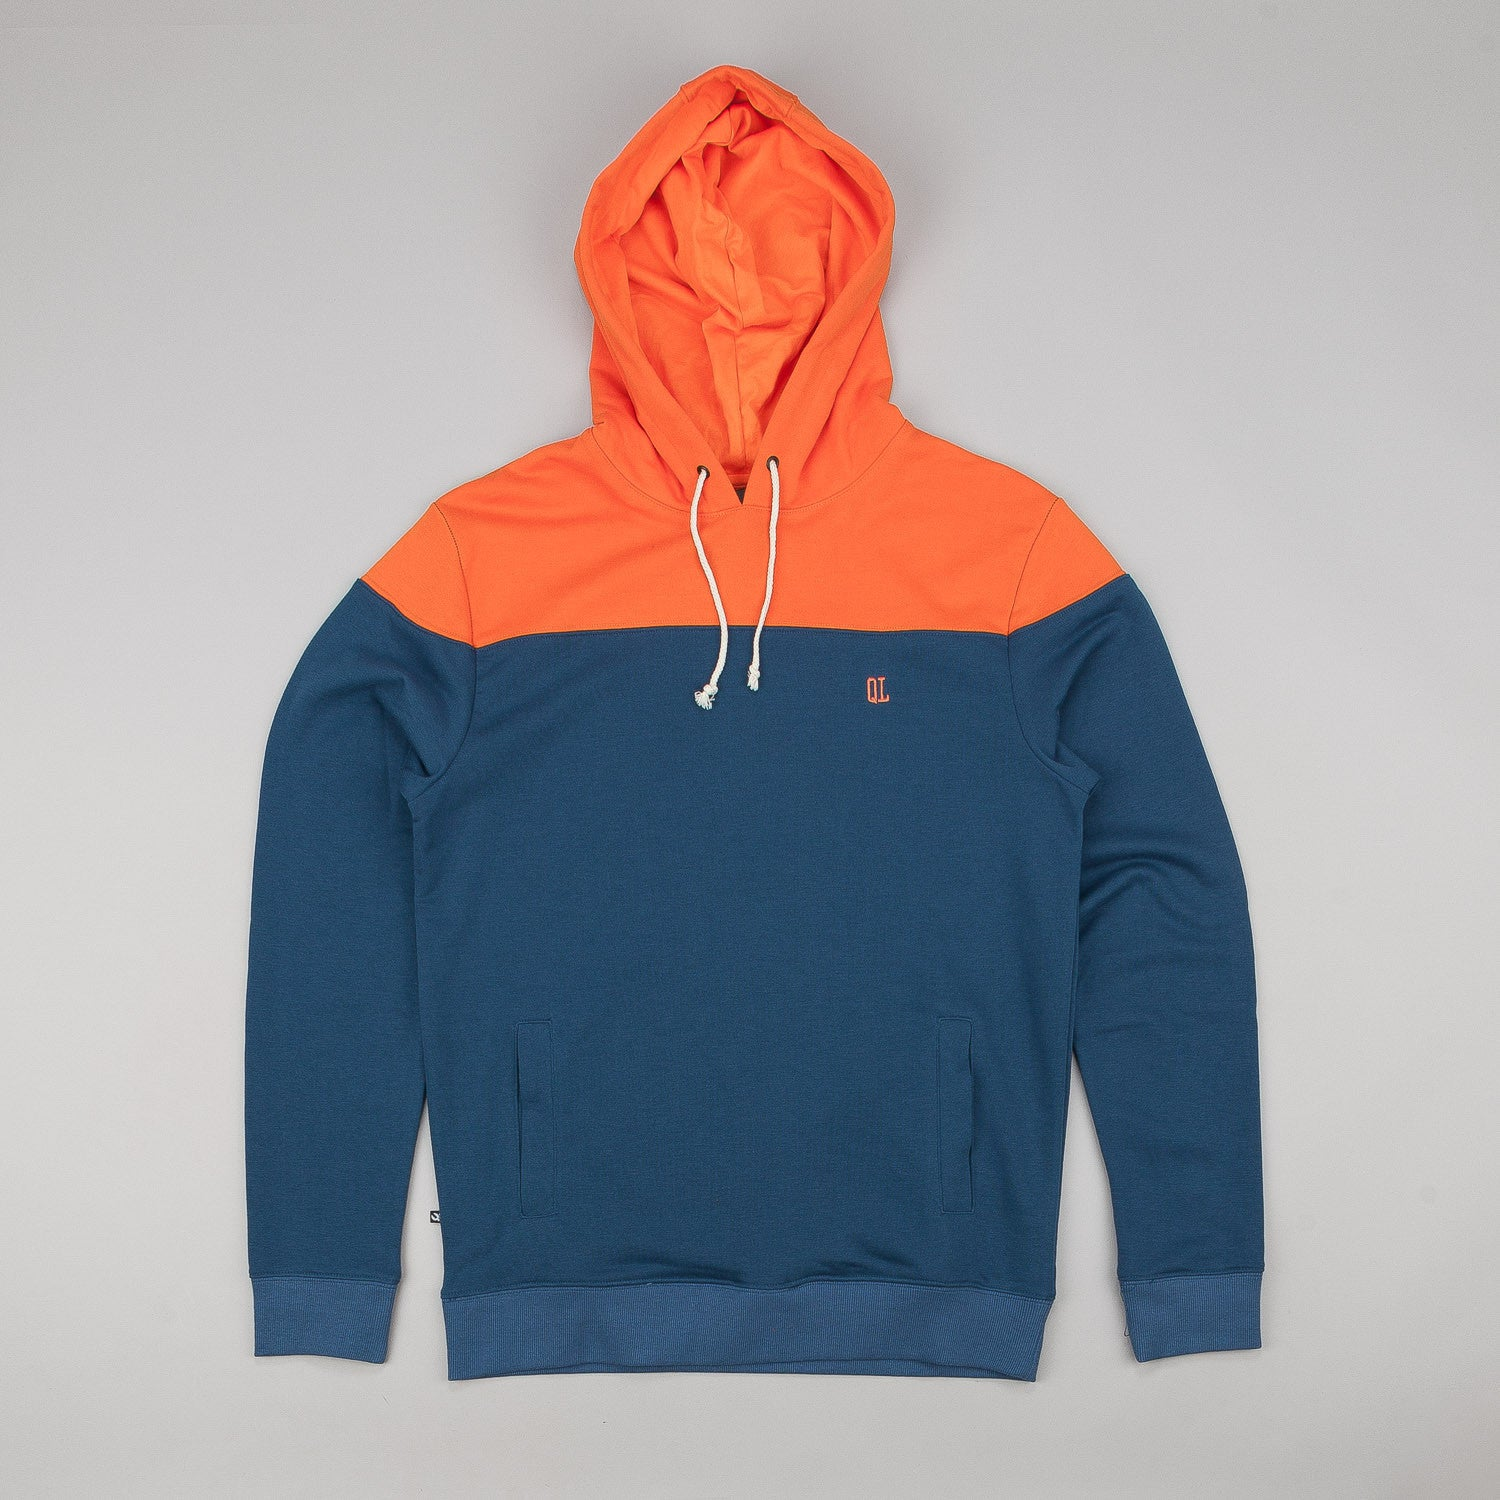 The Quiet Life Colour Block Hooded Sweatshirt